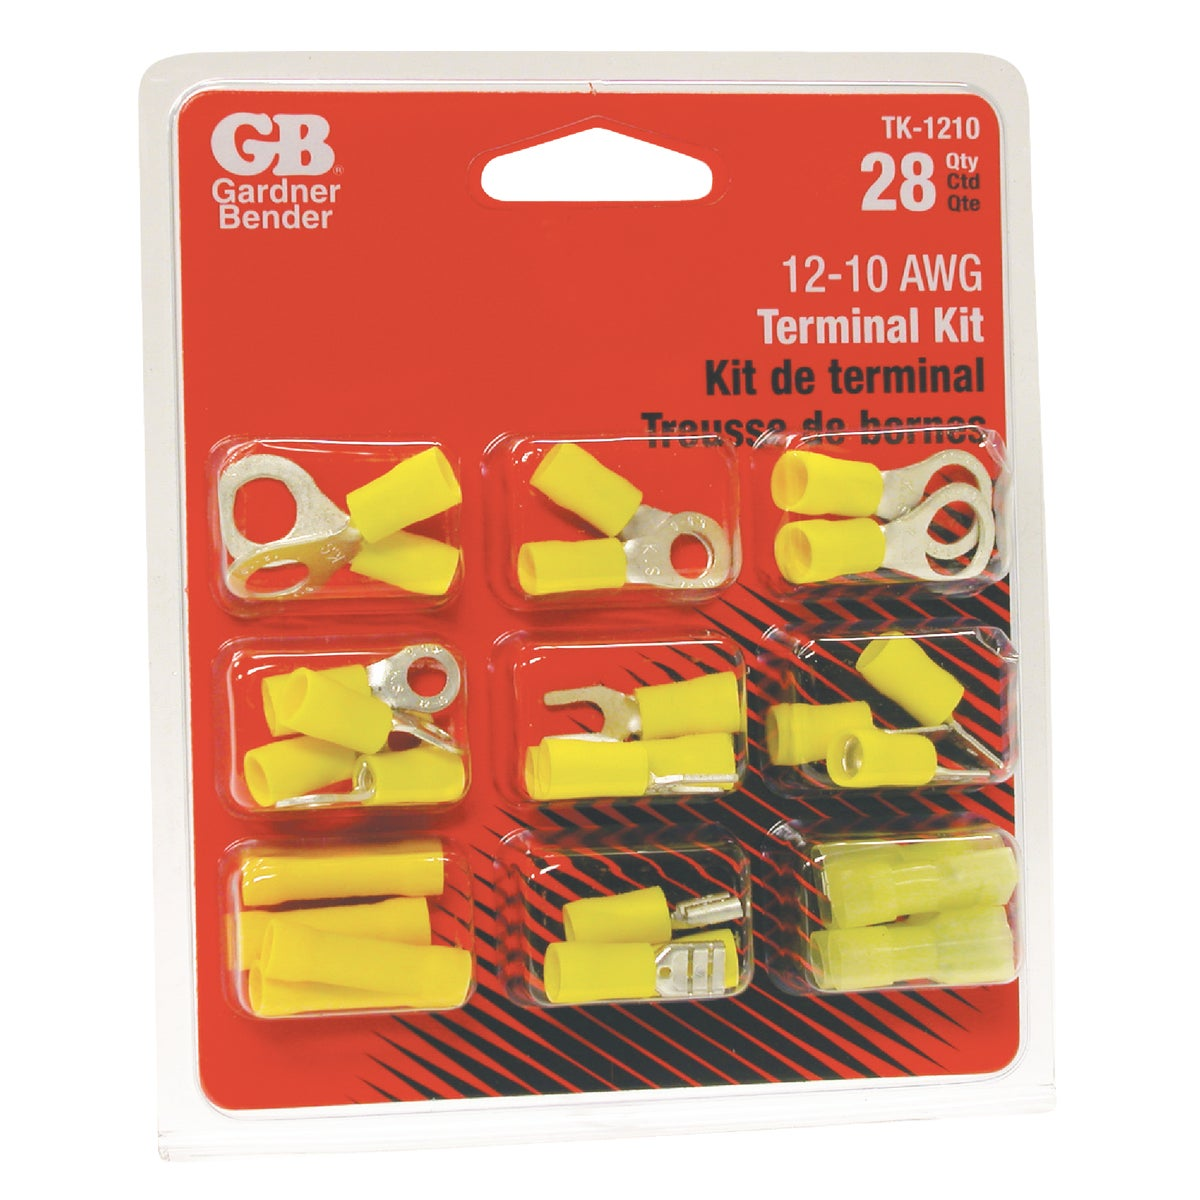 GB Electrical 12-10 AWG TERMINAL KIT TK-1210